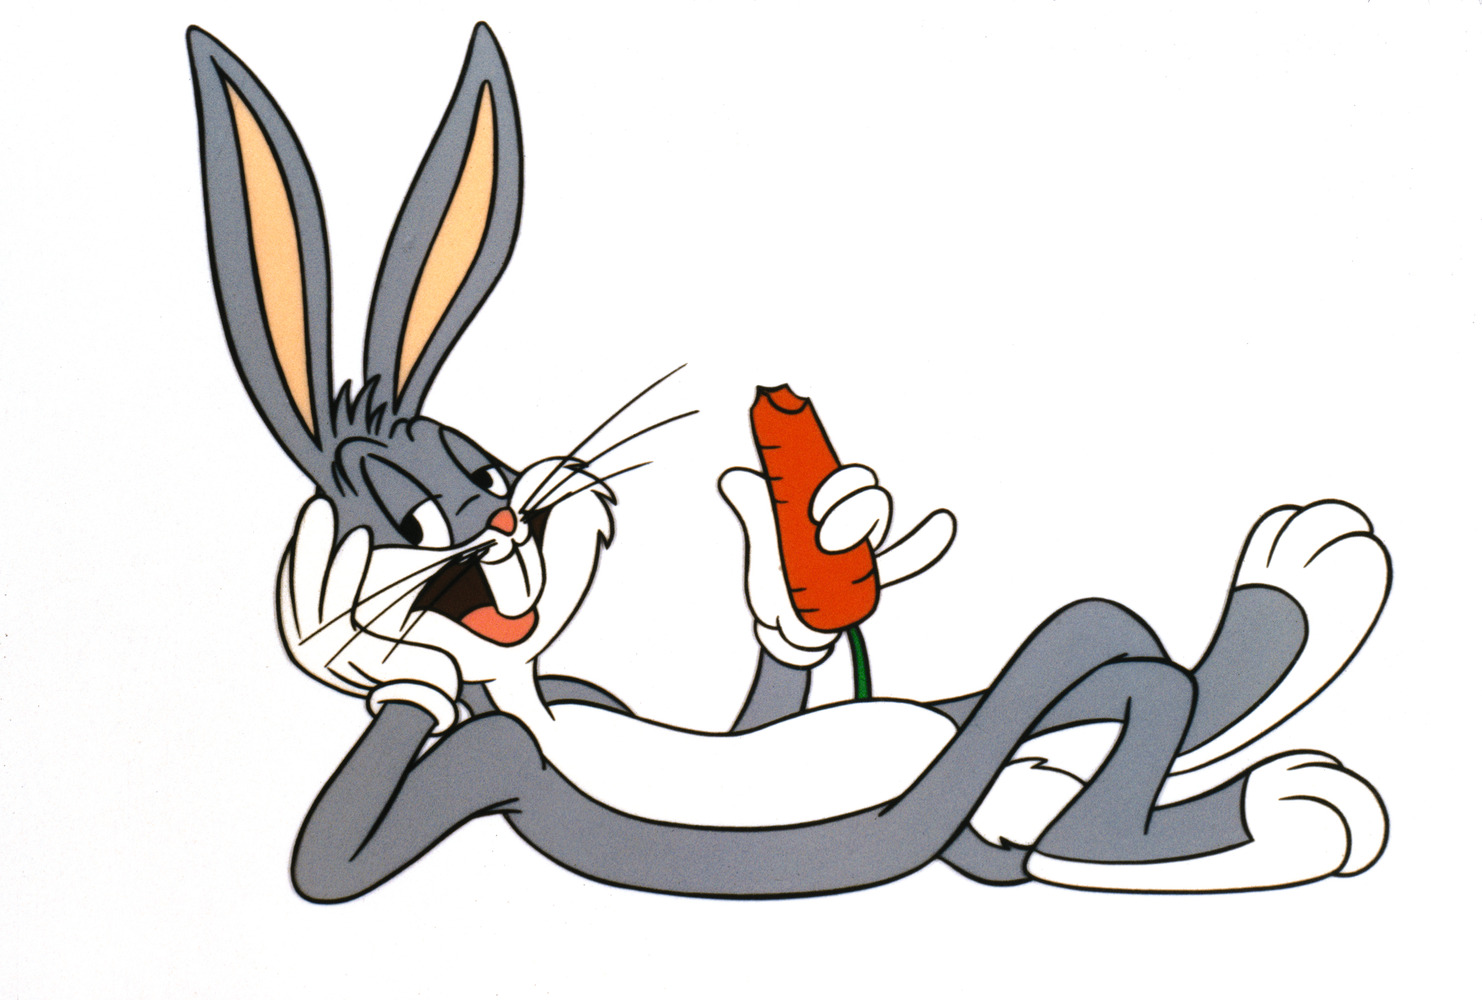 Bugs Bunny Laying And Eating Carrot